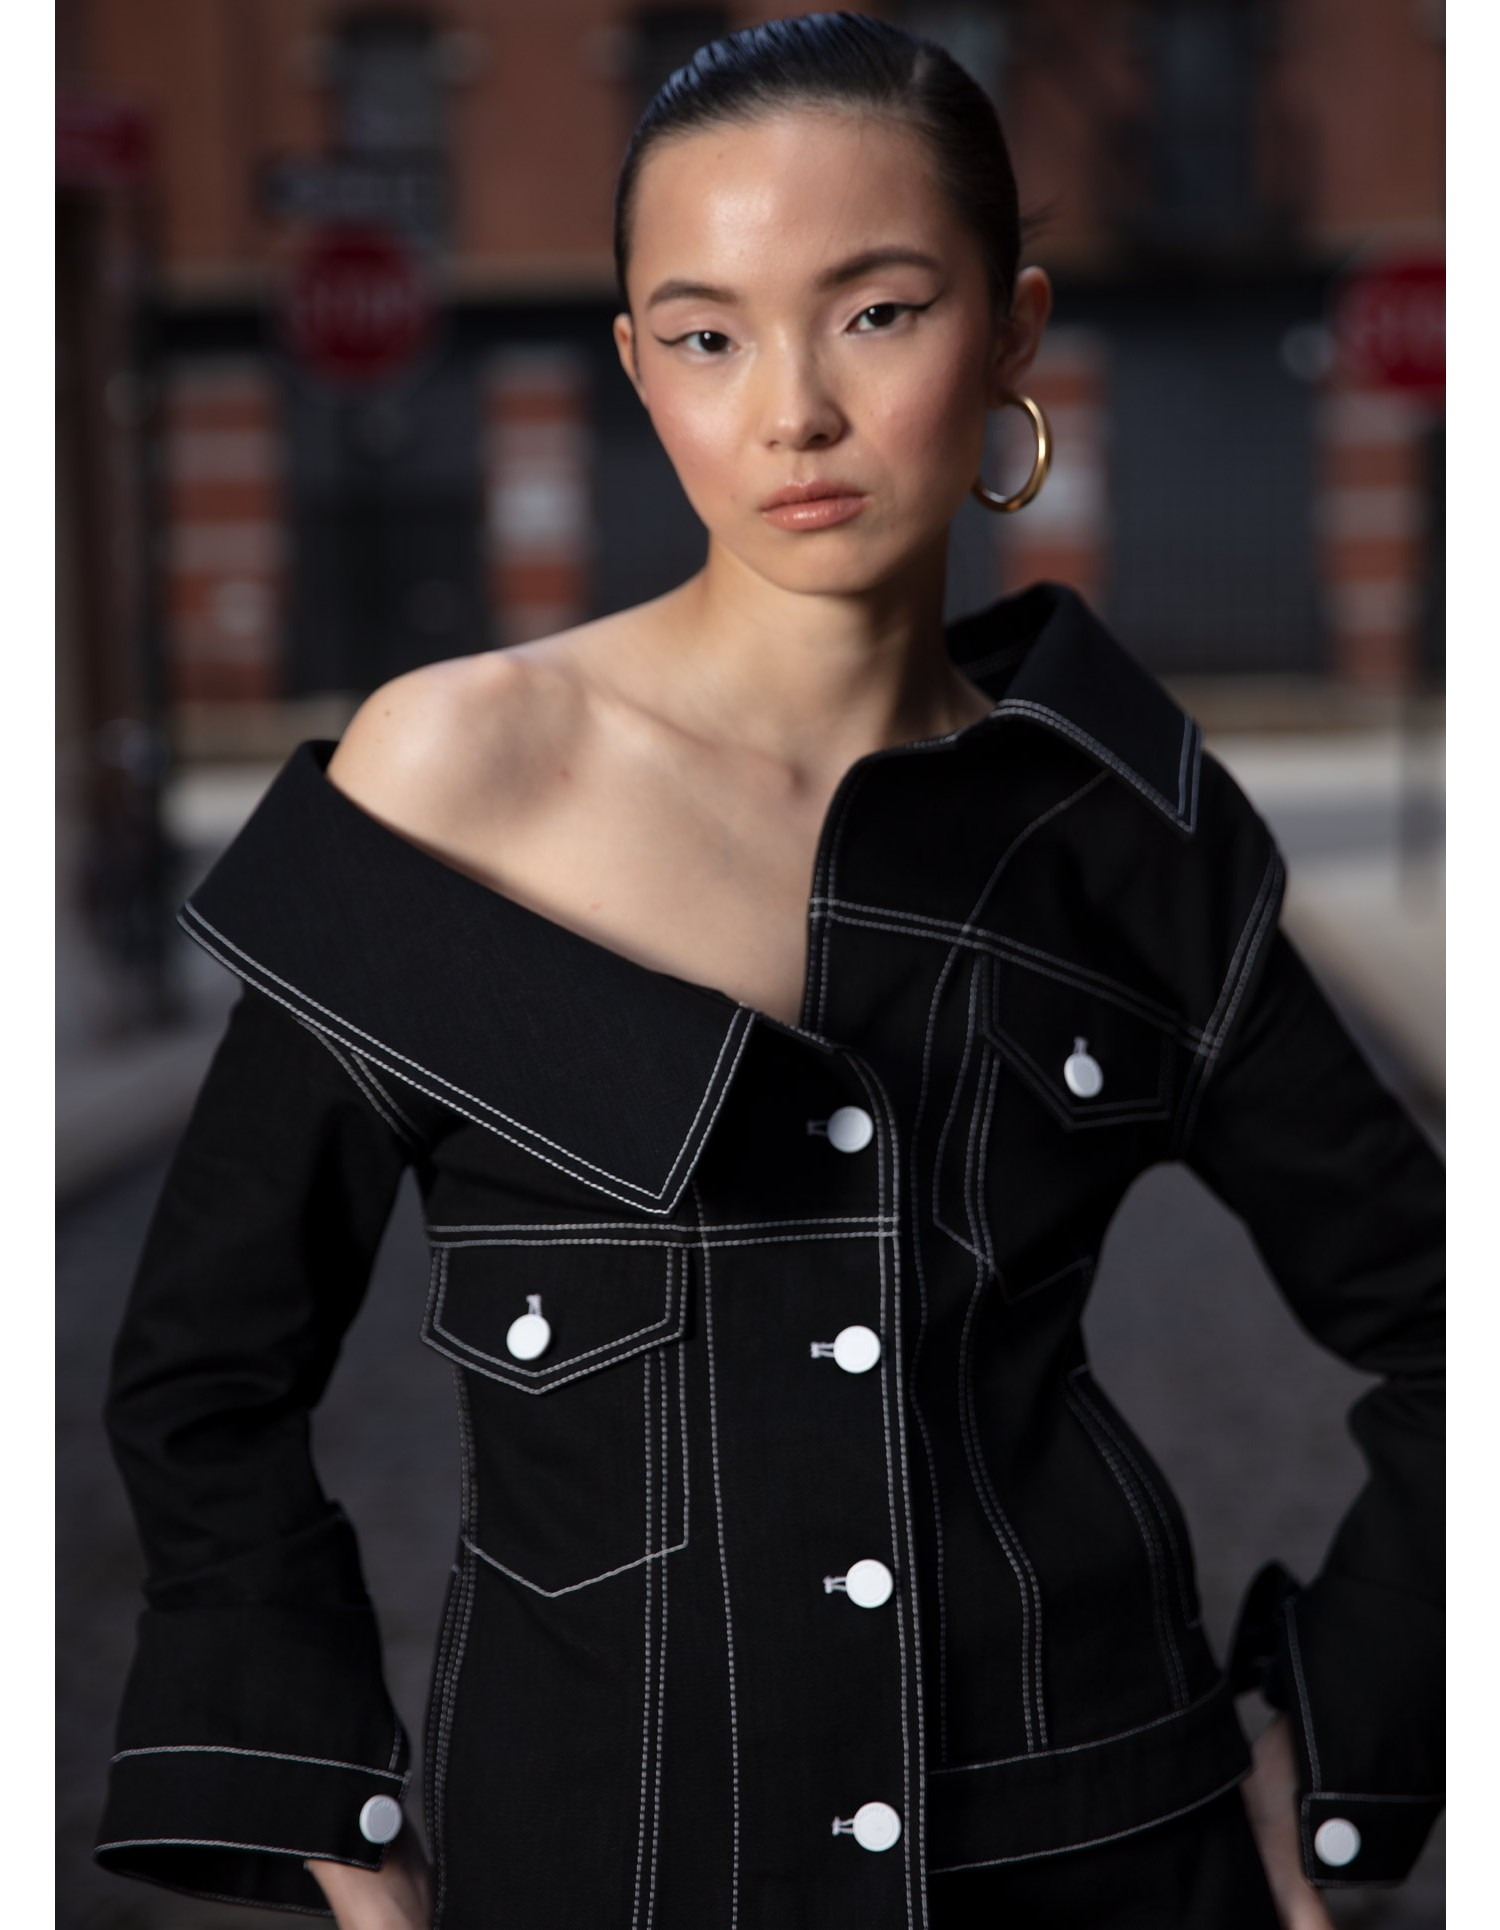 MONSE Crooked Denim Jacket in Black on Model Front Detailed View